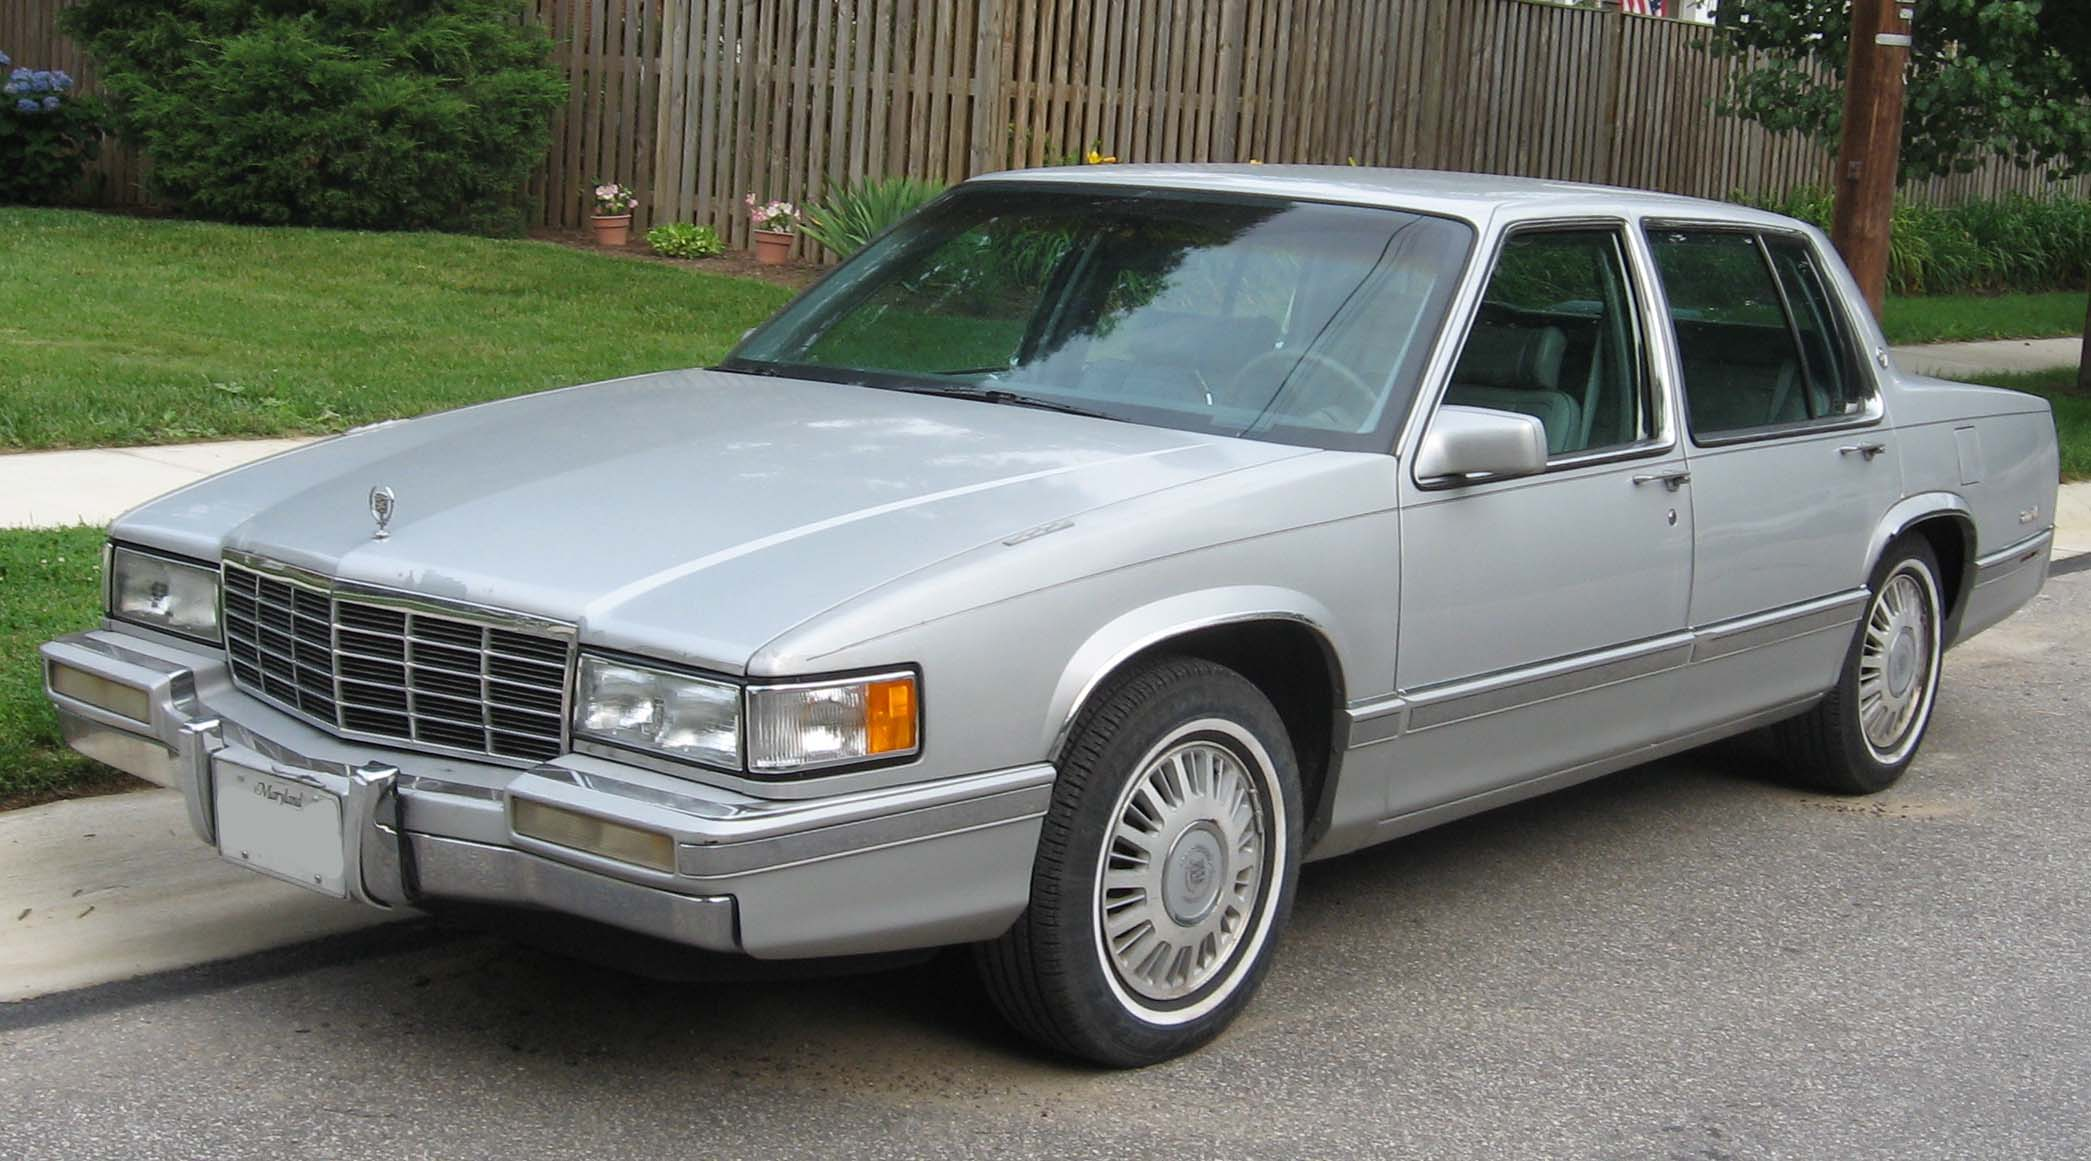 Cadillac seville photo - 4